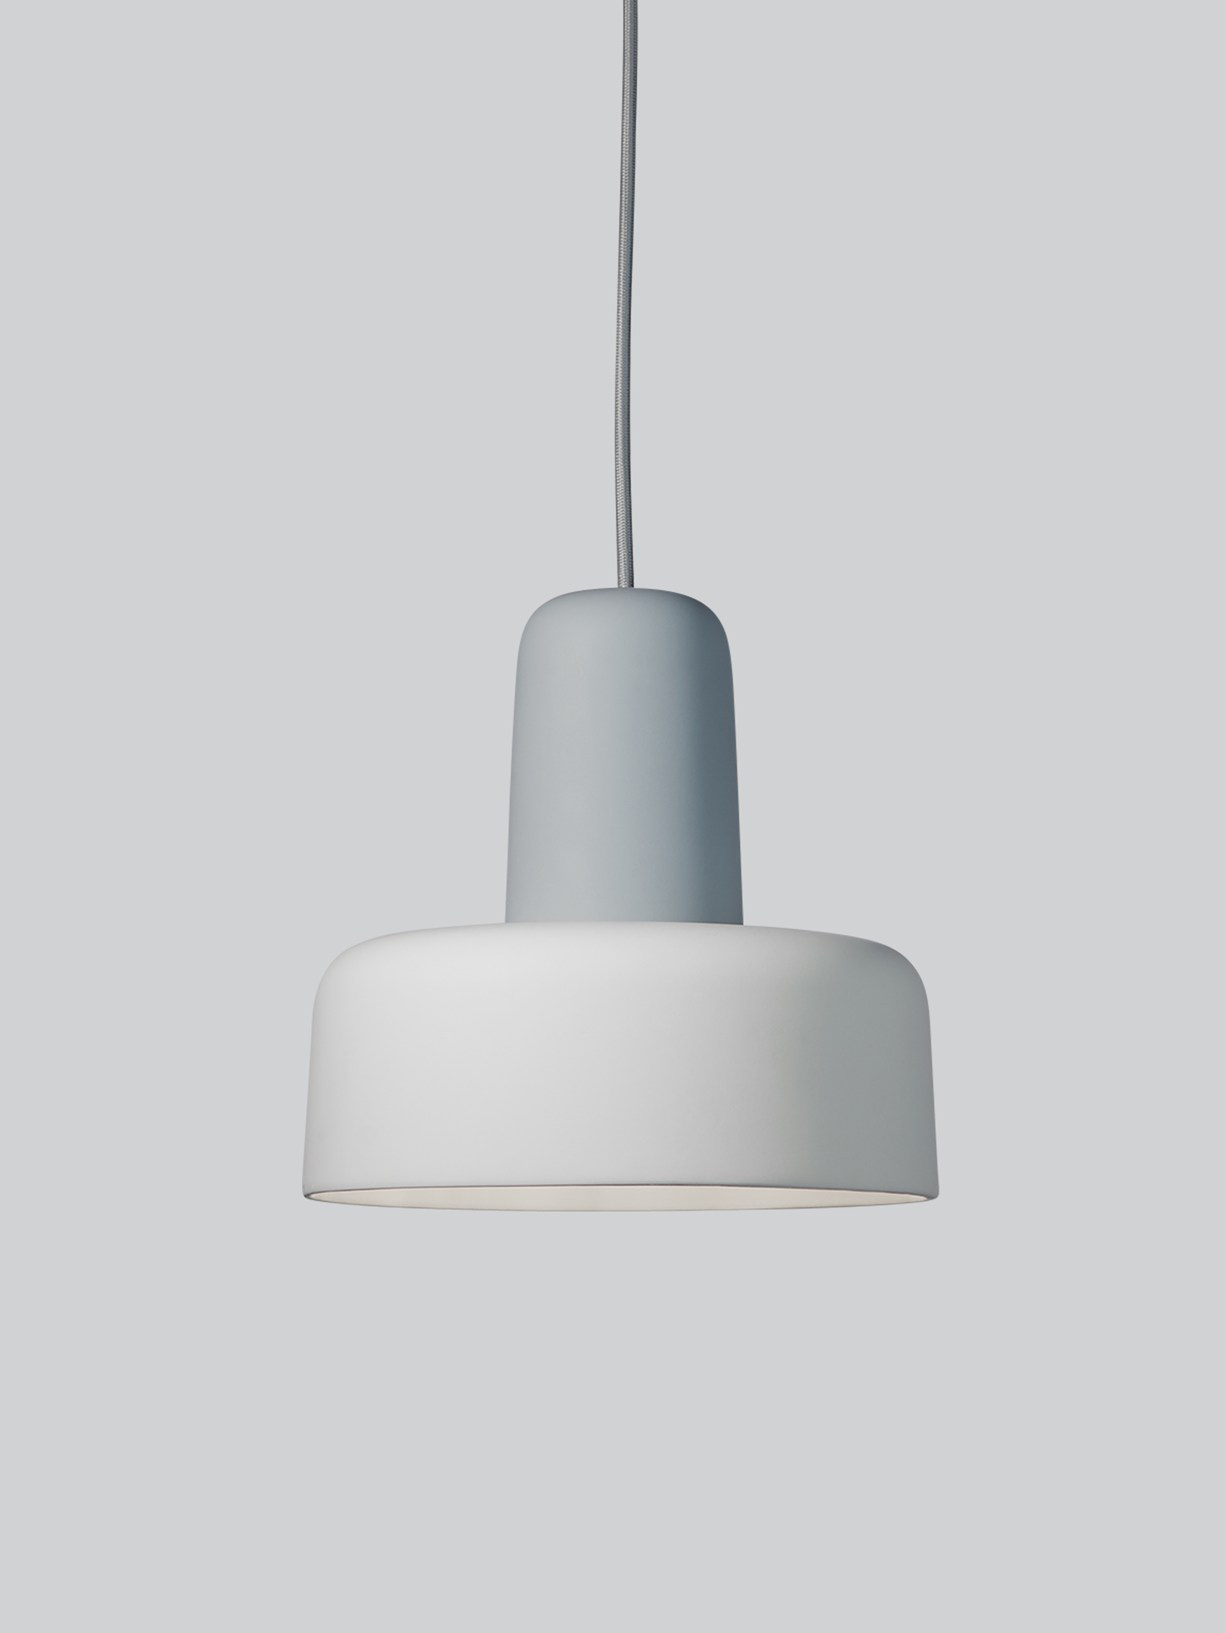 Meld New Stoneware Light by Northern Lighting at Stockholm Furniture Fair 2017 | Yellowtrace